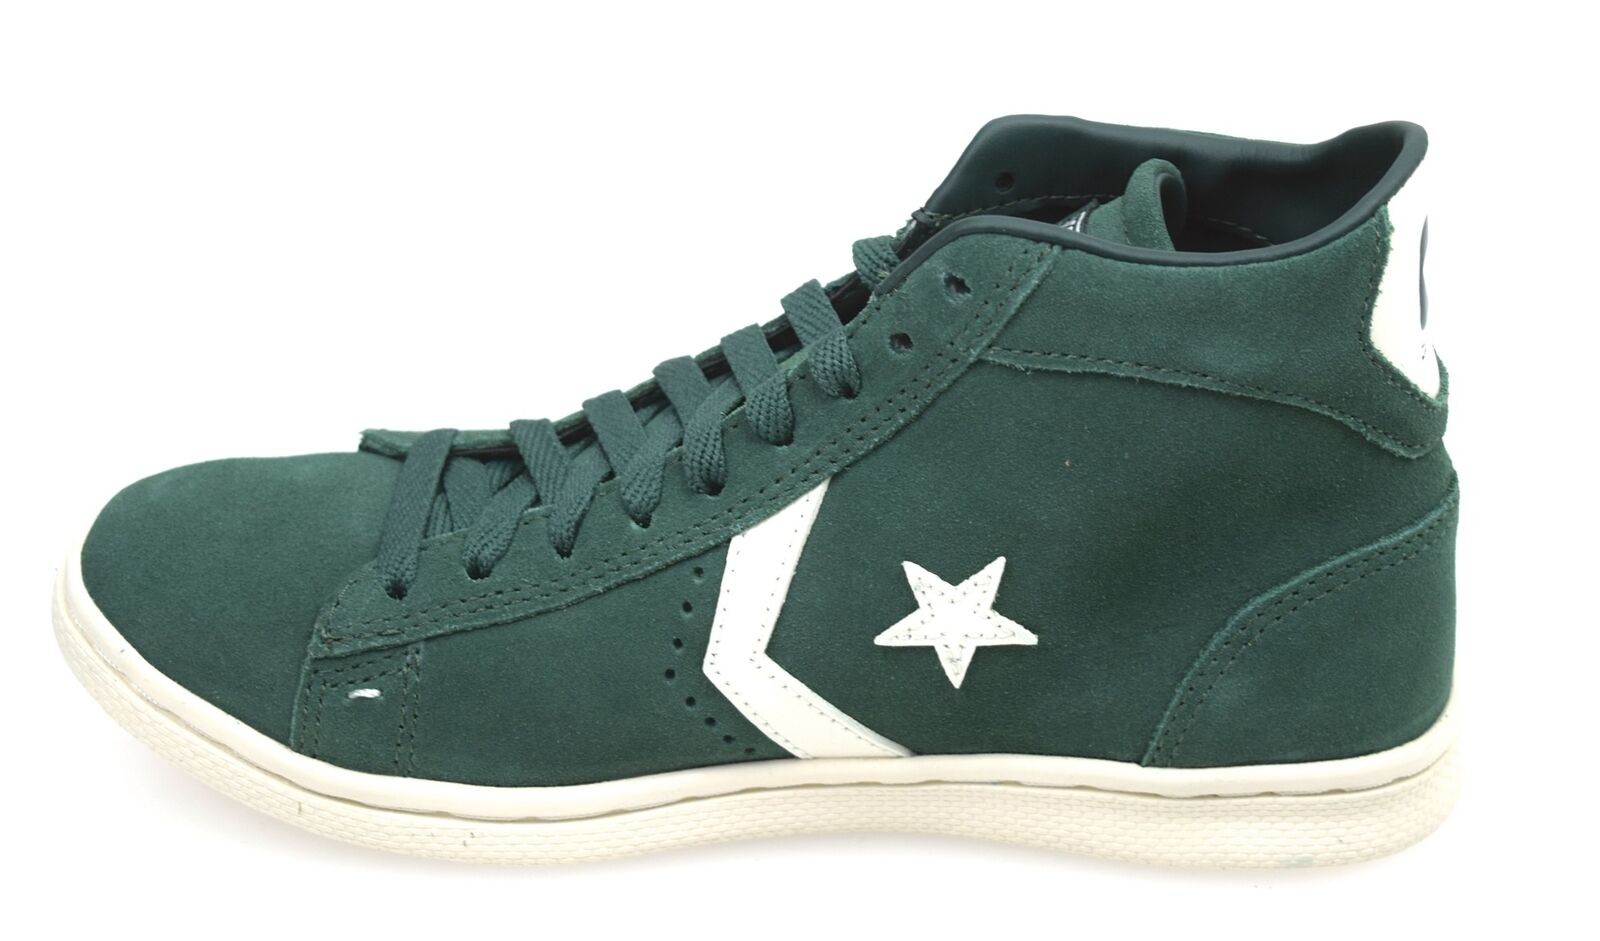 CONVERSE WOMAN SNEAKER SHOES CASUAL CASUAL CASUAL FREE TIME SUEDE CODE 129020C - 129021C 50fc72